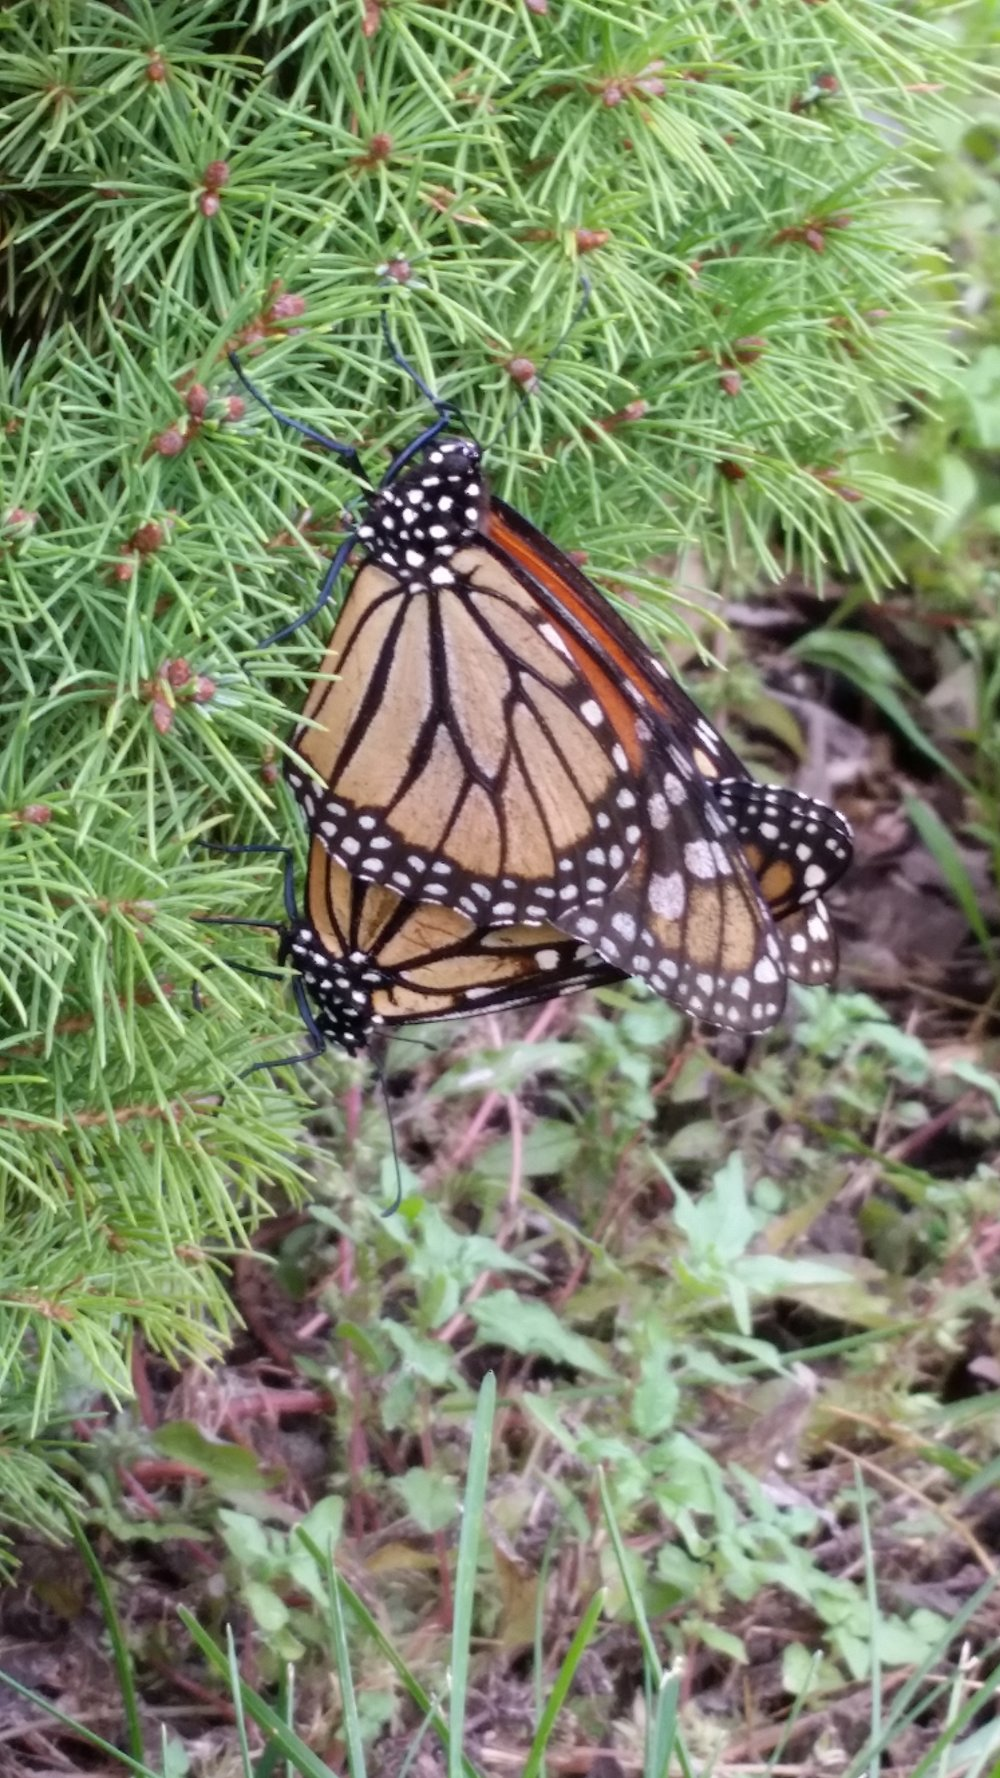 This is the third pair of mating monarchs that I've seen in the yard this summer.